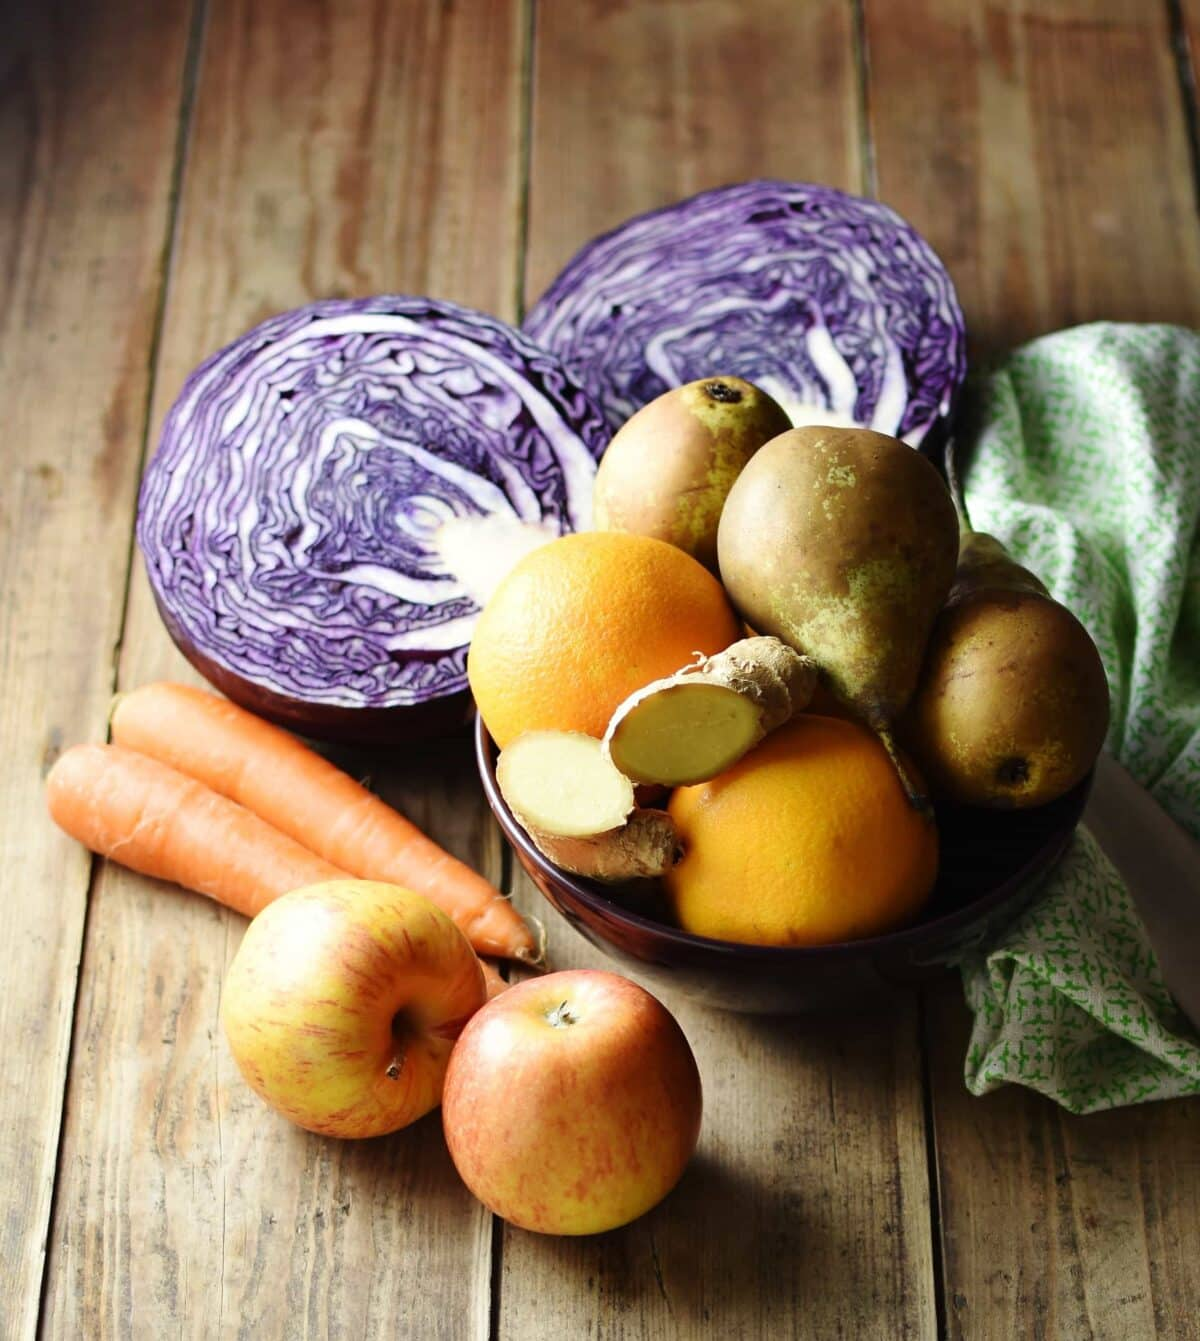 Raw apples, carrots and halved red cabbage on top of wooden surface with pears, oranges and ginger inside purple bowl and green cloth to the right.